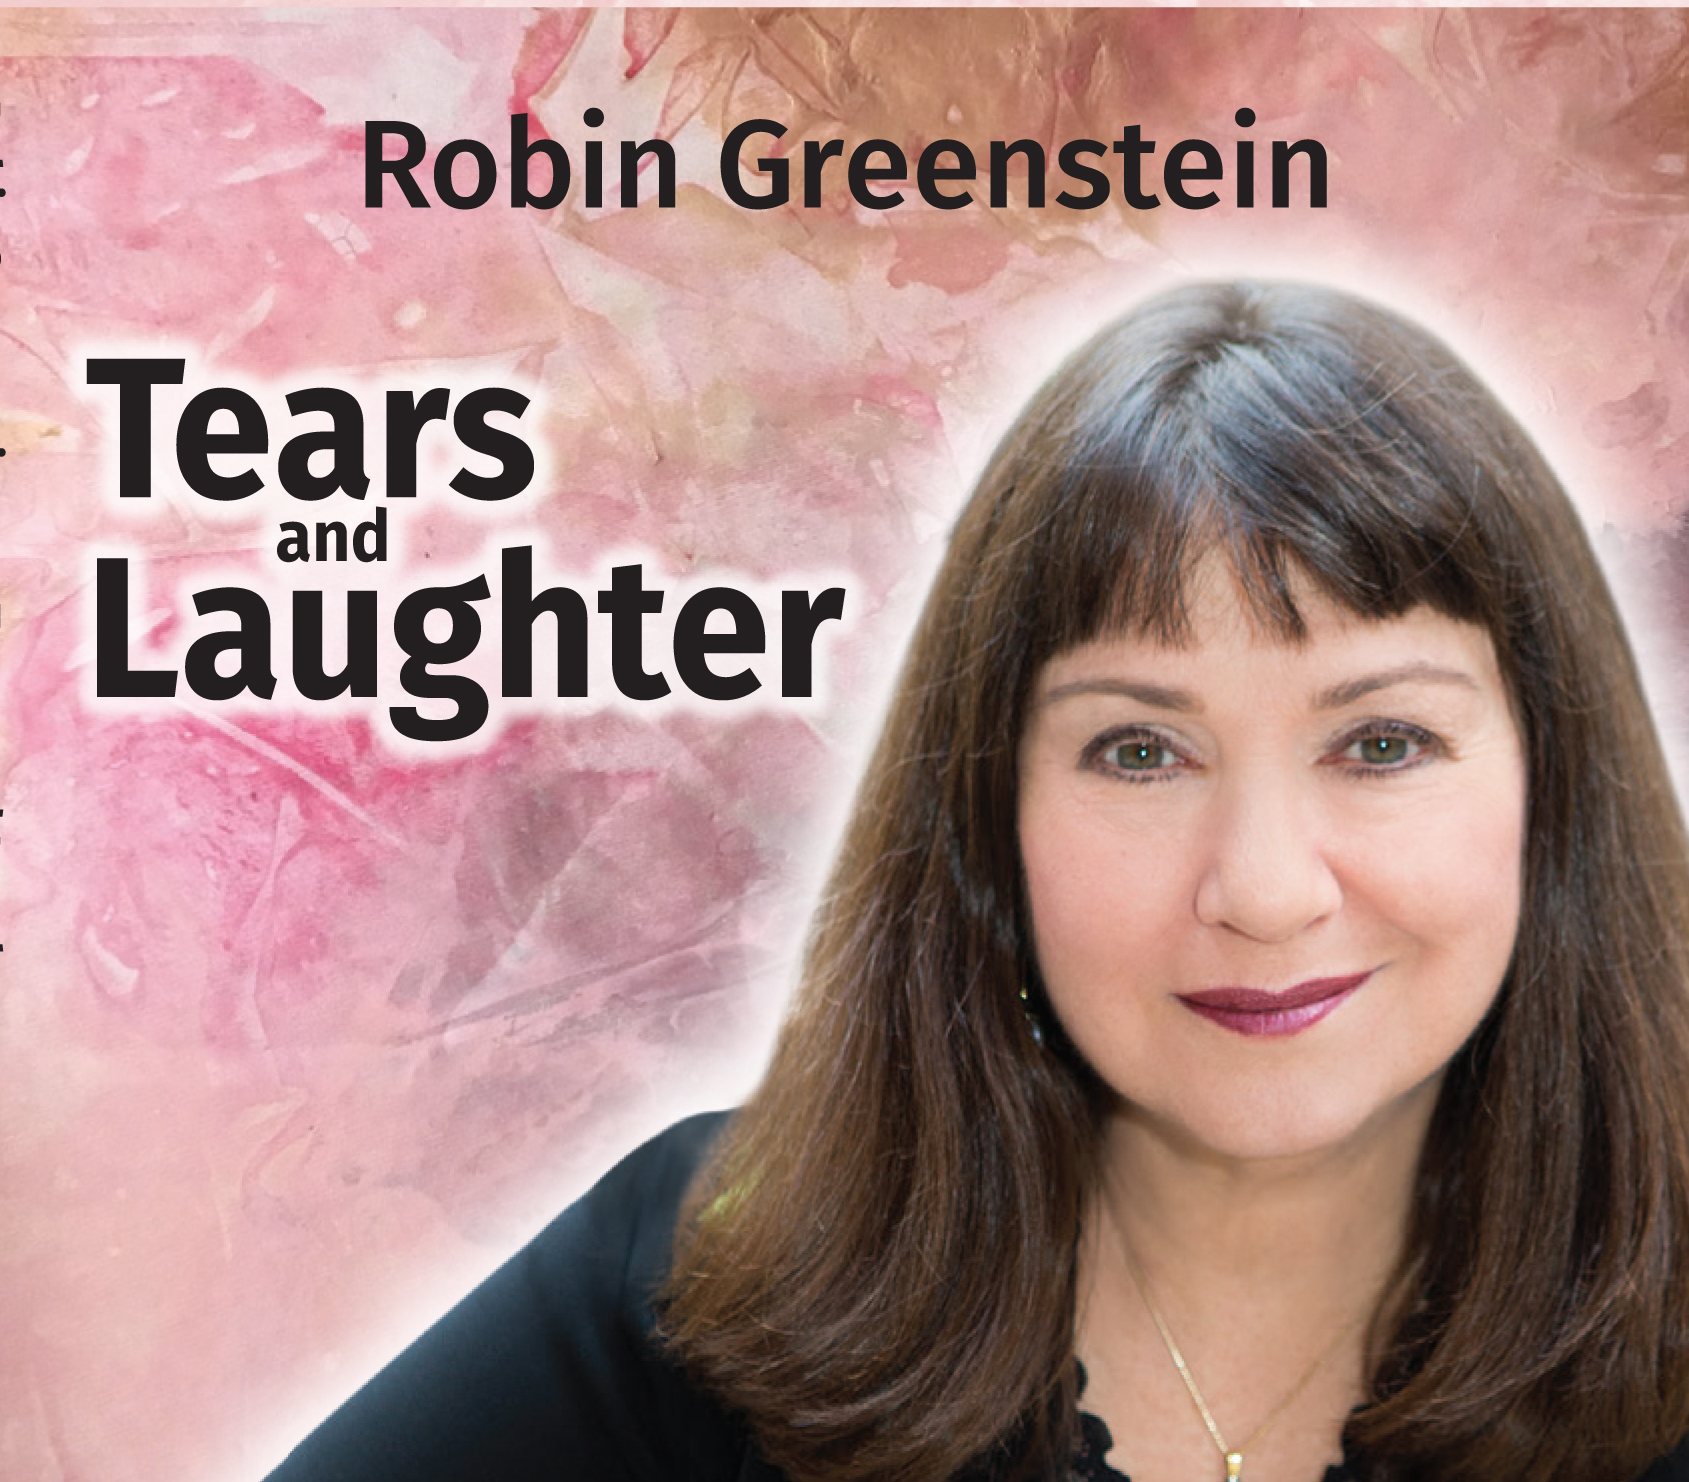 Tears And Laughter CD cover image